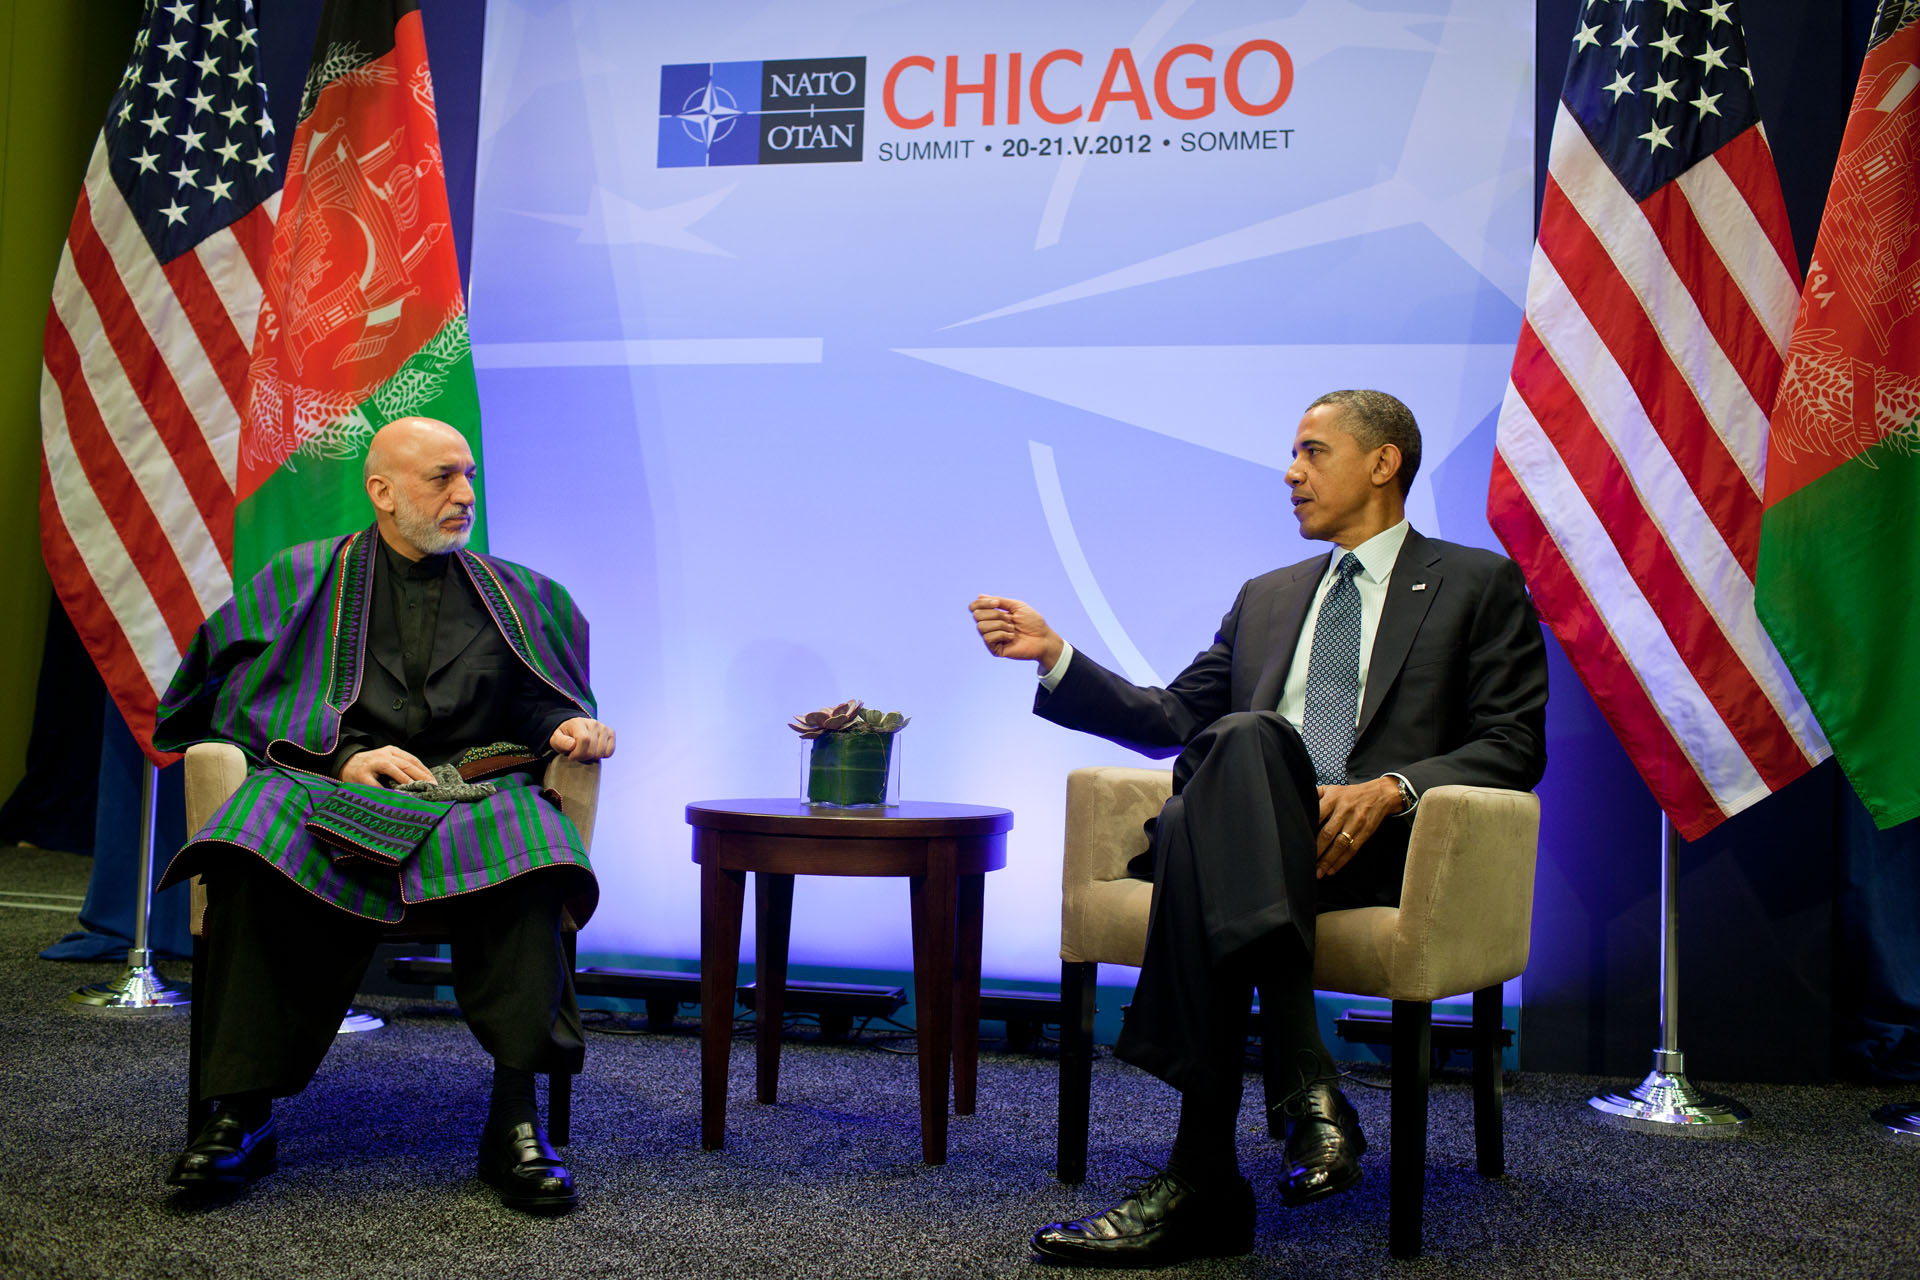 President Barack Obama and President Hamid Karzai of Afghanistan deliver statements after a bilateral meeting